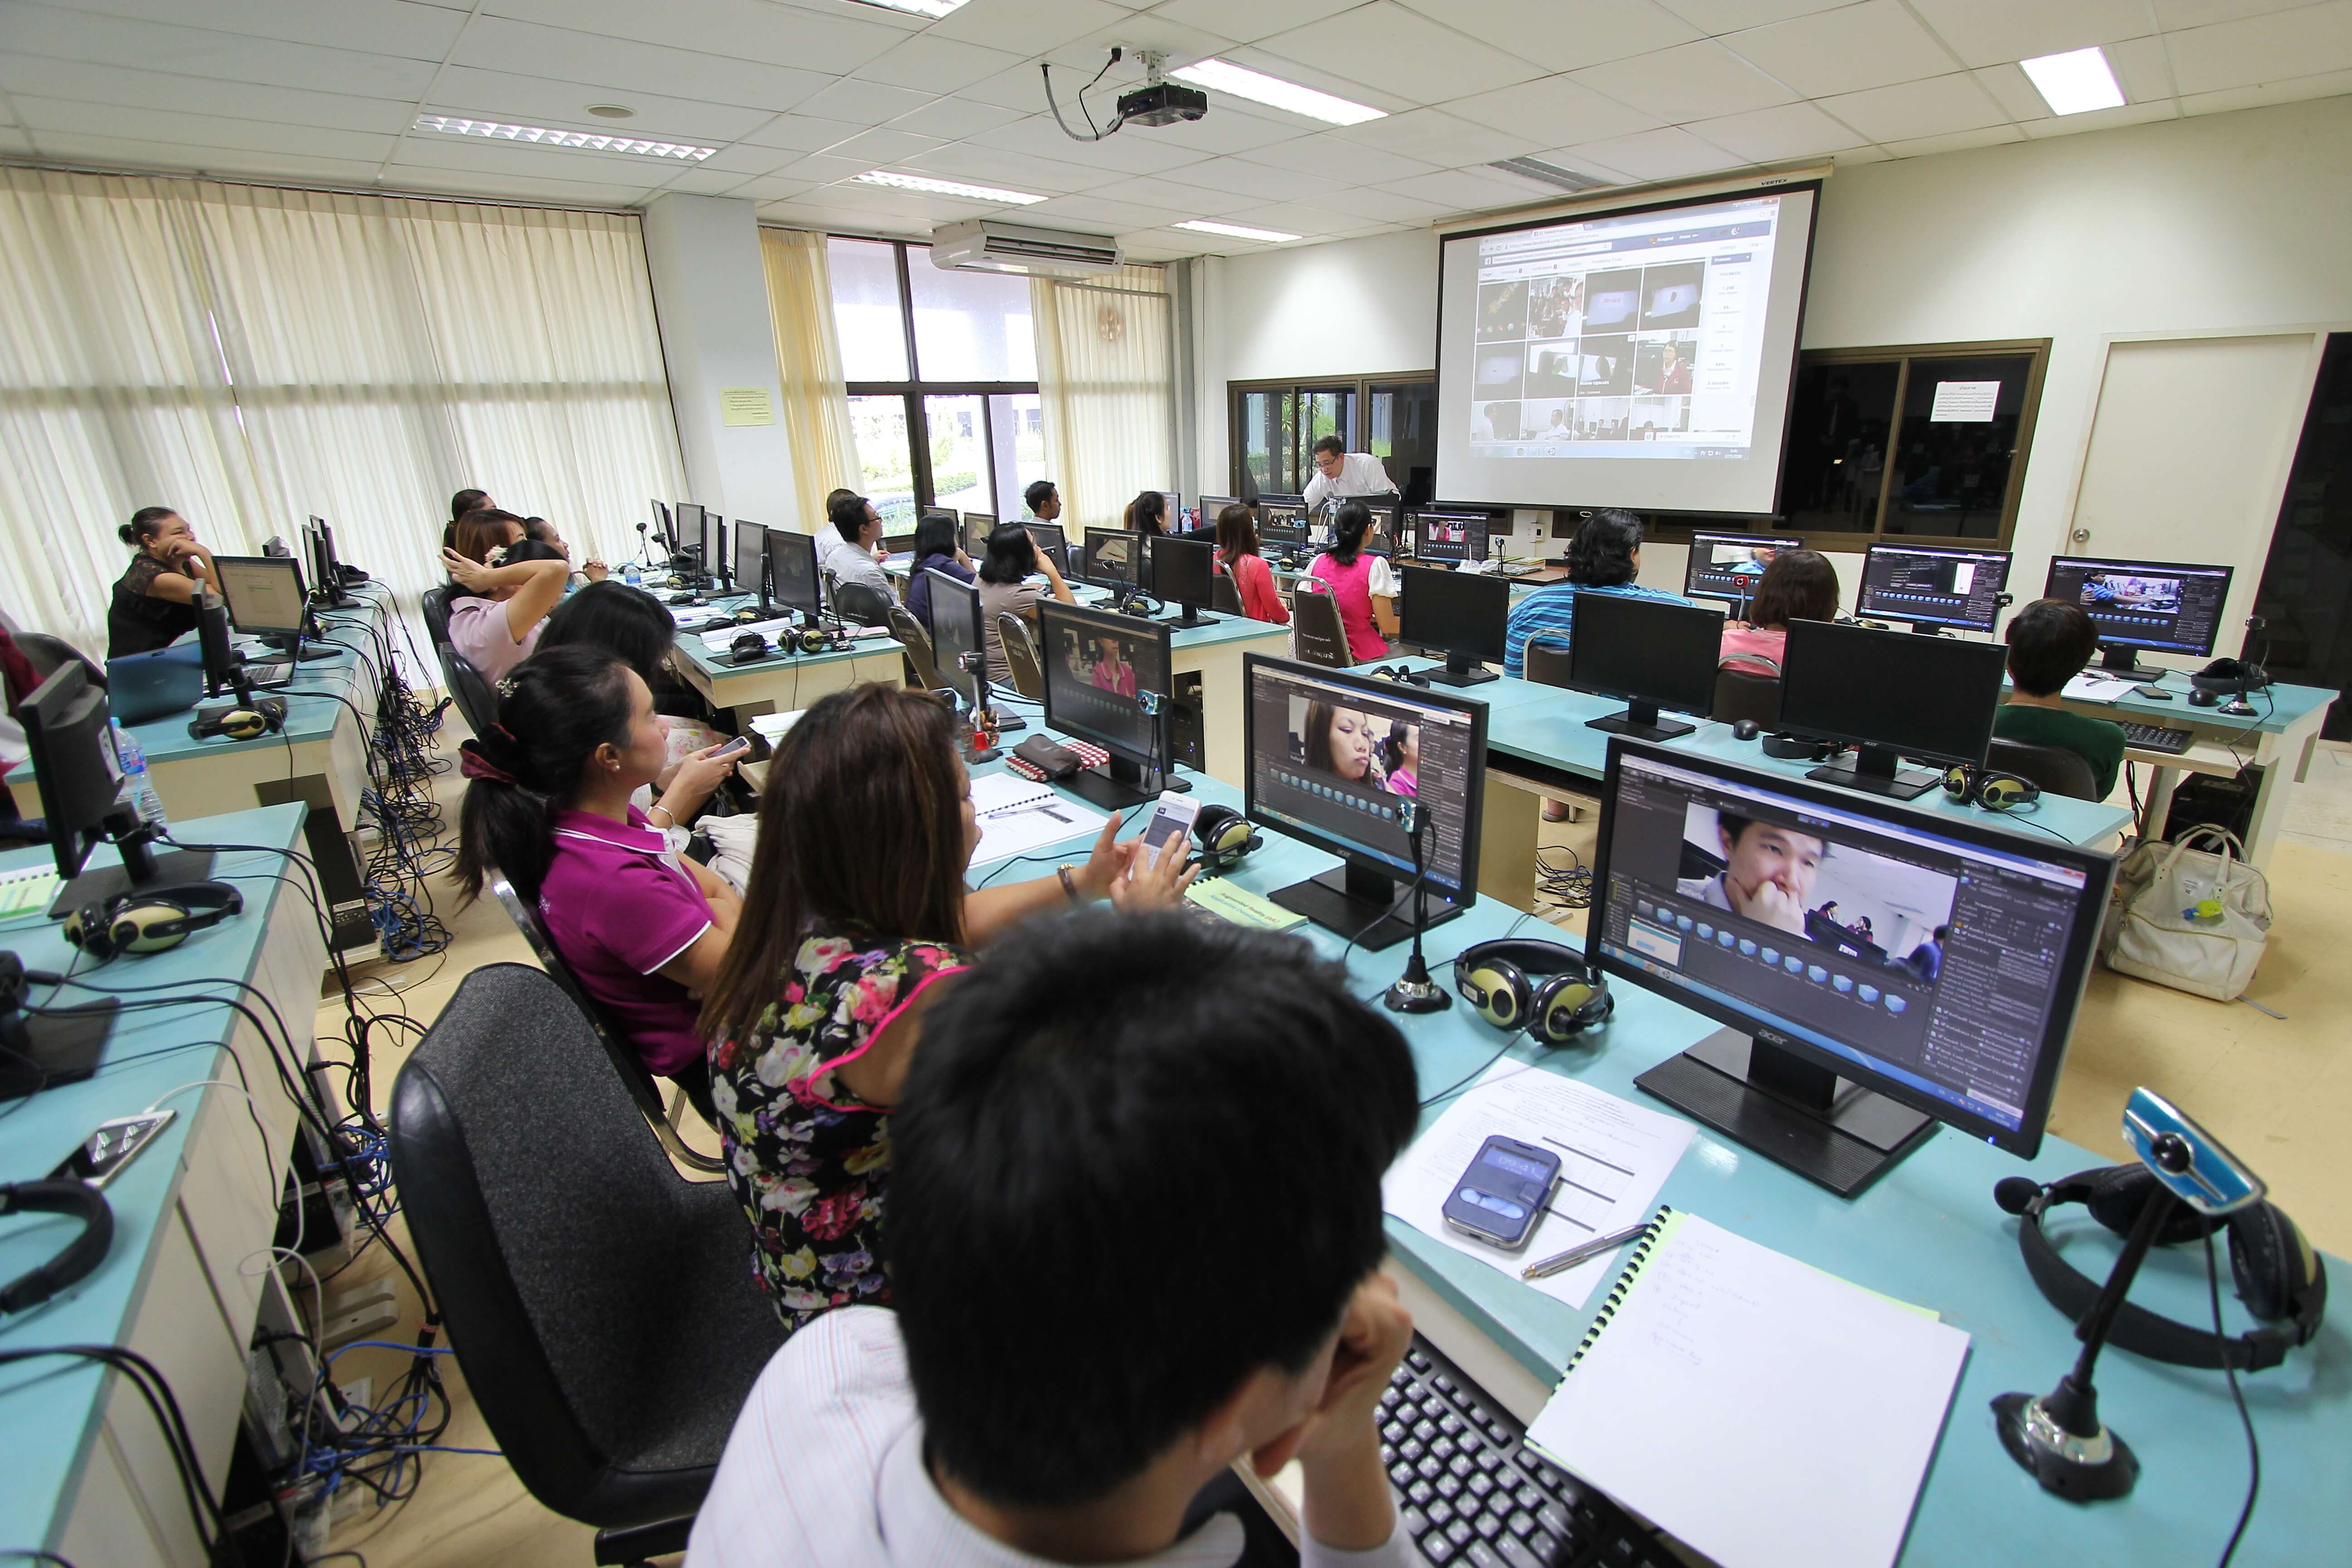 With the rapid evolution of technology in every imaginable sector, future classrooms will be hinged on AI and other future technology. Here are some ways how it will unfold. Source: Shutterstock.com